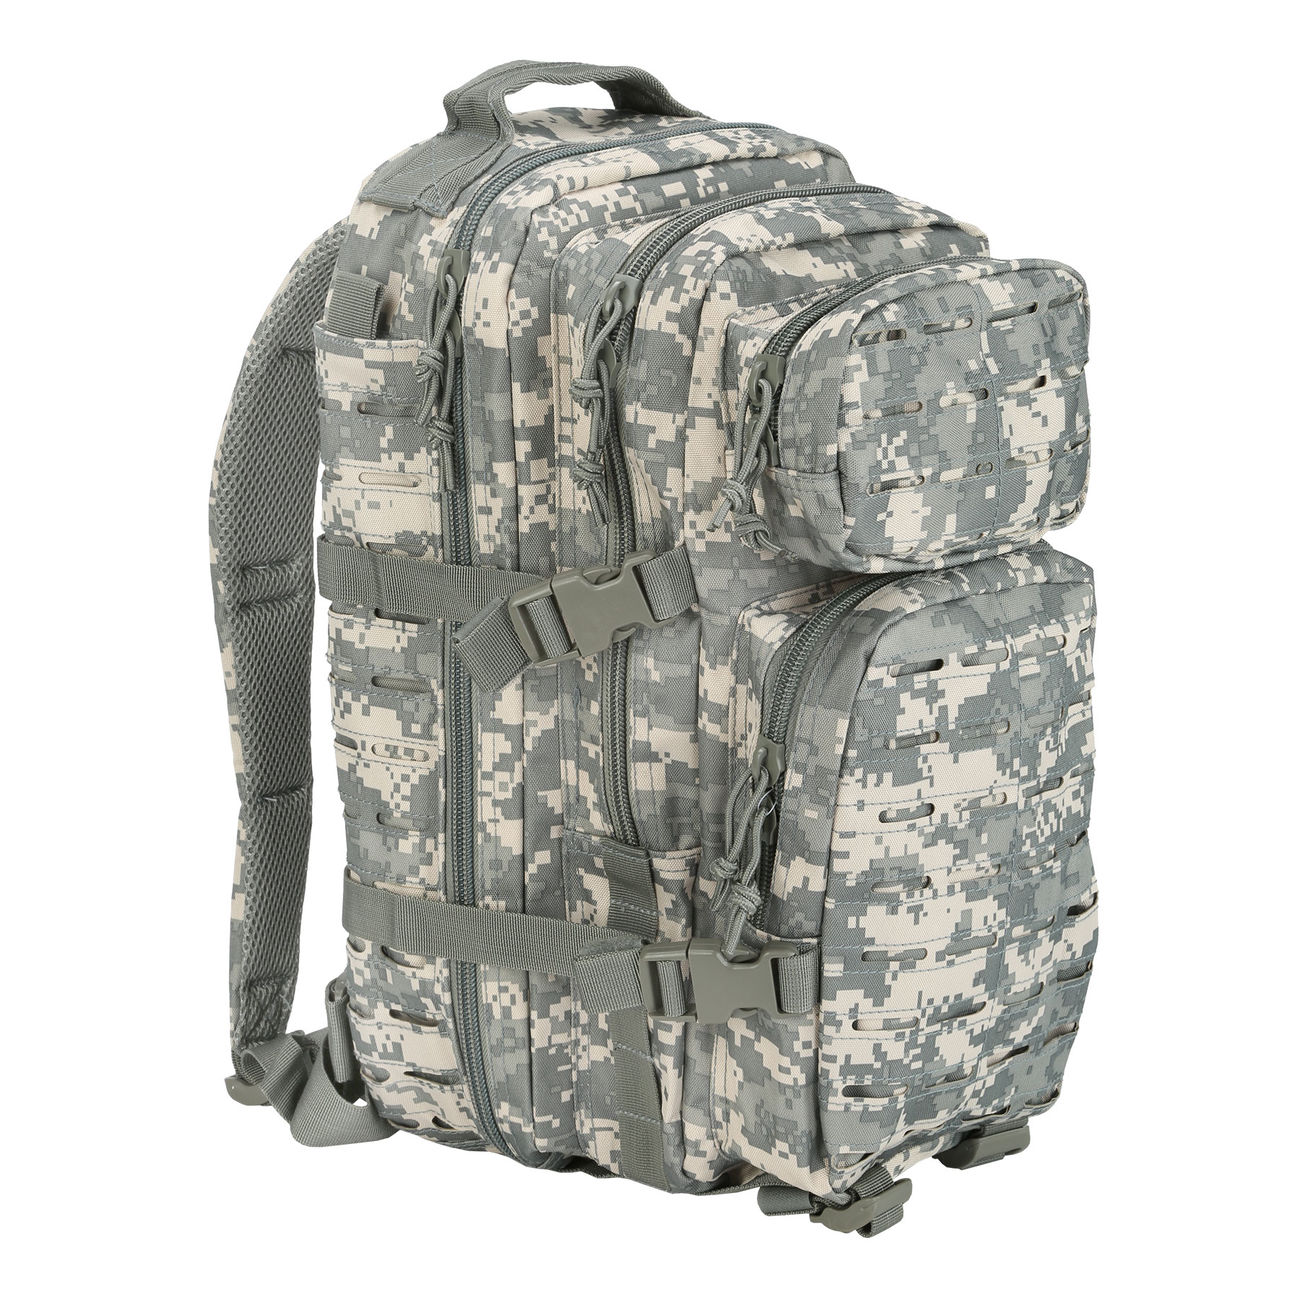 1c2c0d56b6334 Mil-Tec Rucksack US Assault Pack Laser Cut small 20L AT-digital ...